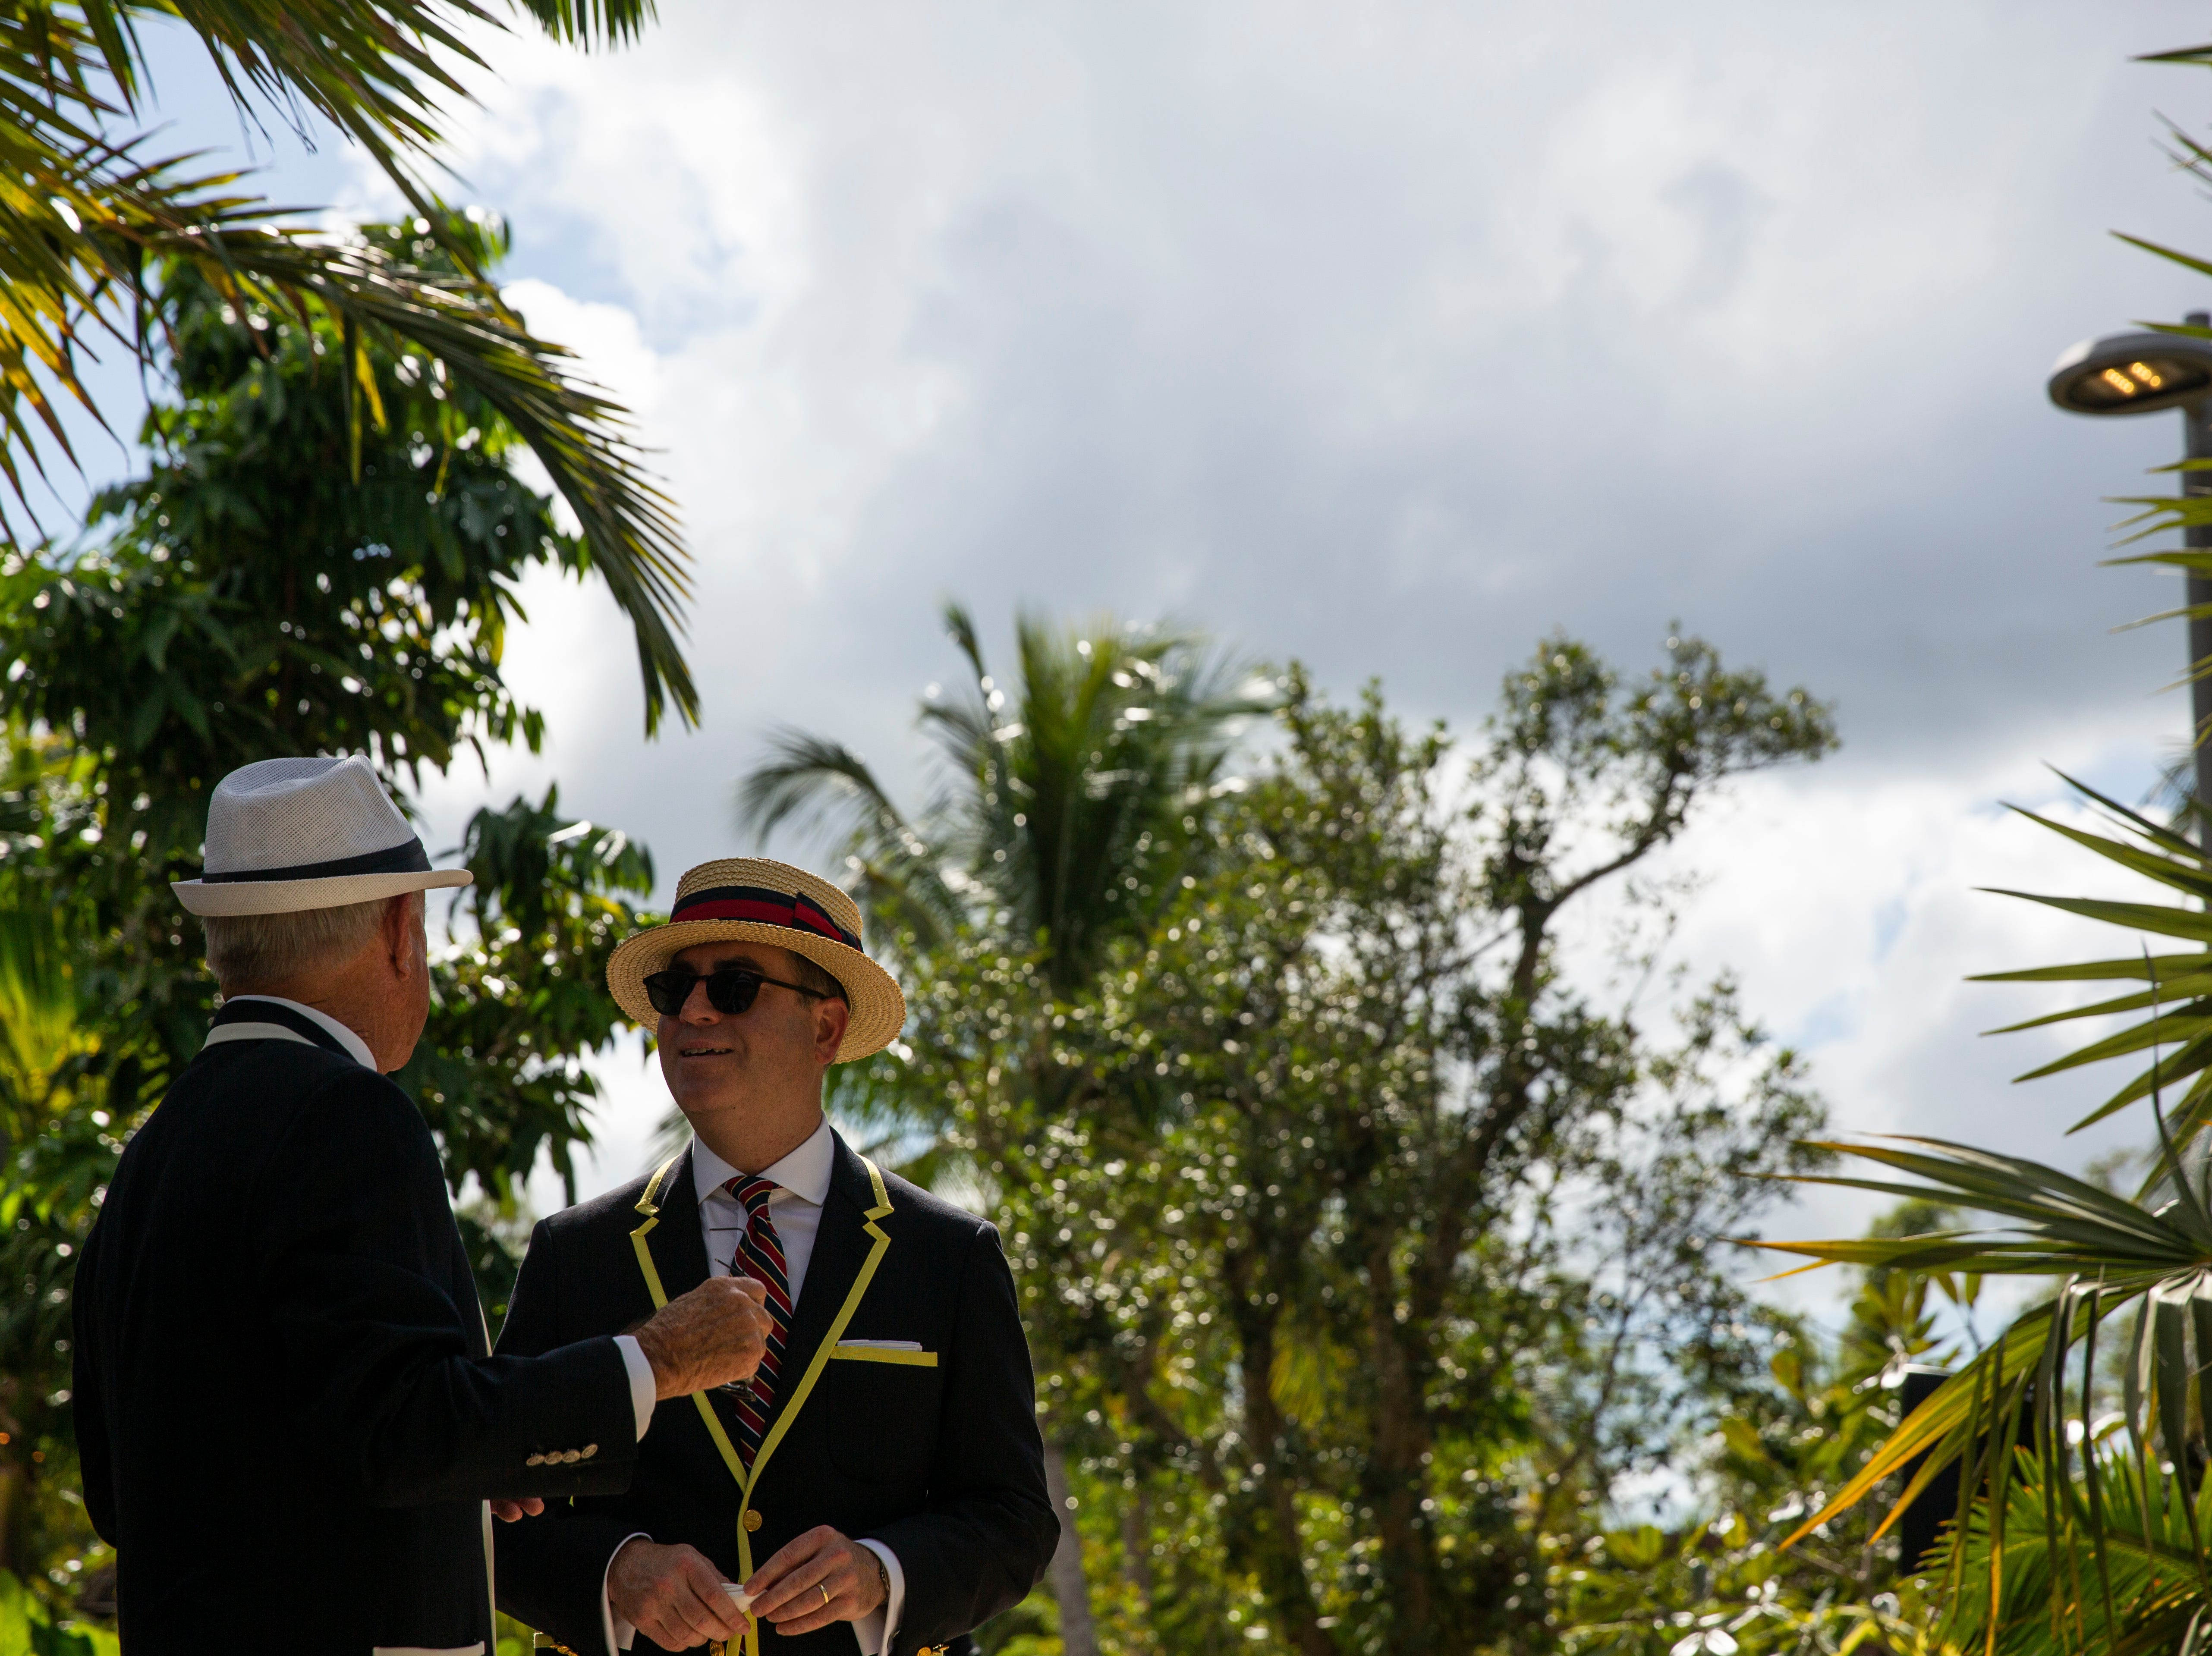 David Bush, a seasonal resident of Palm Beach shares a conversation with Bill Bindley at the 15th annual Hats in the Garden fundraiser at Naples Botanical Garden. Bush said the best part about the event, was its craziness.